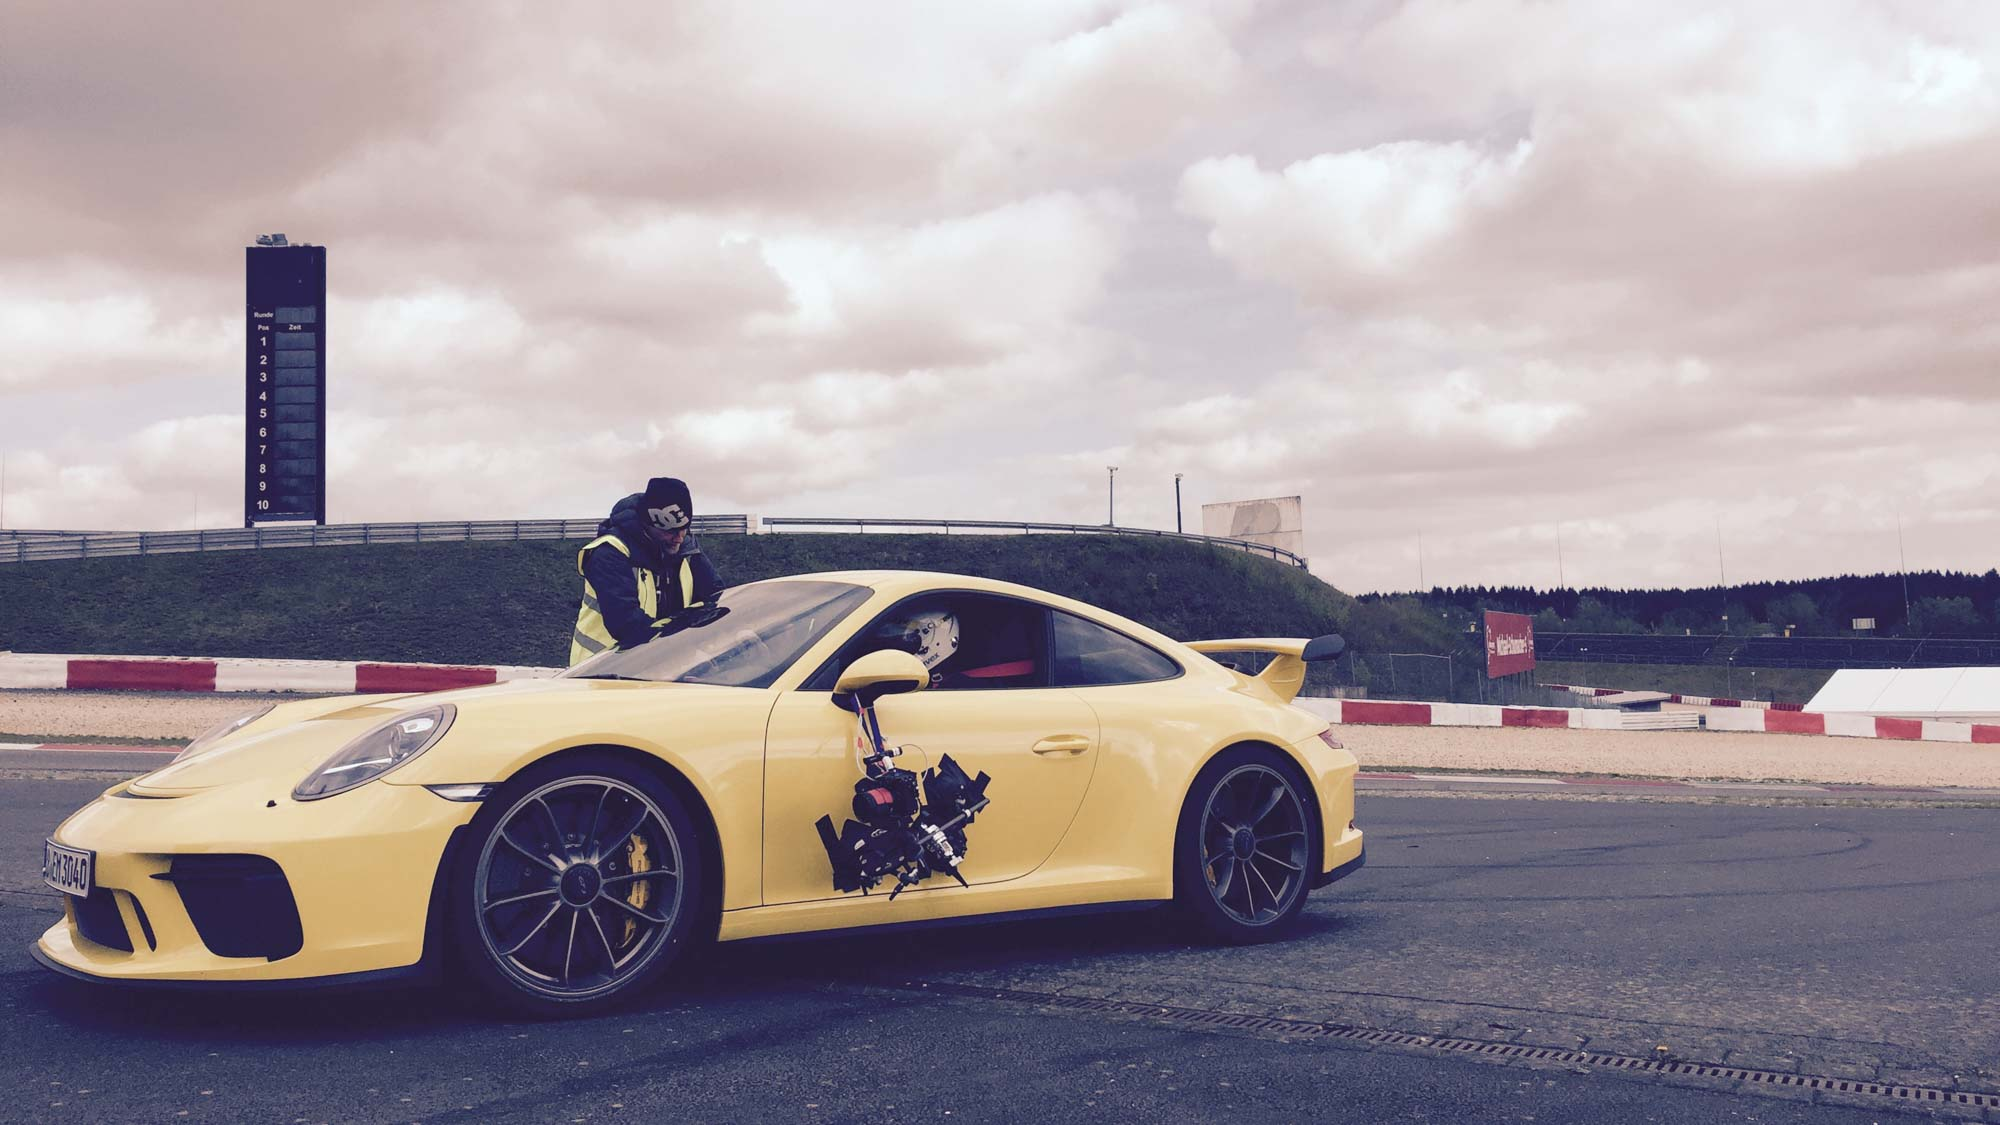 Dunlop - Superhero London - commercial production Germany, local team and equipment, Nürburgring, Arri Amira